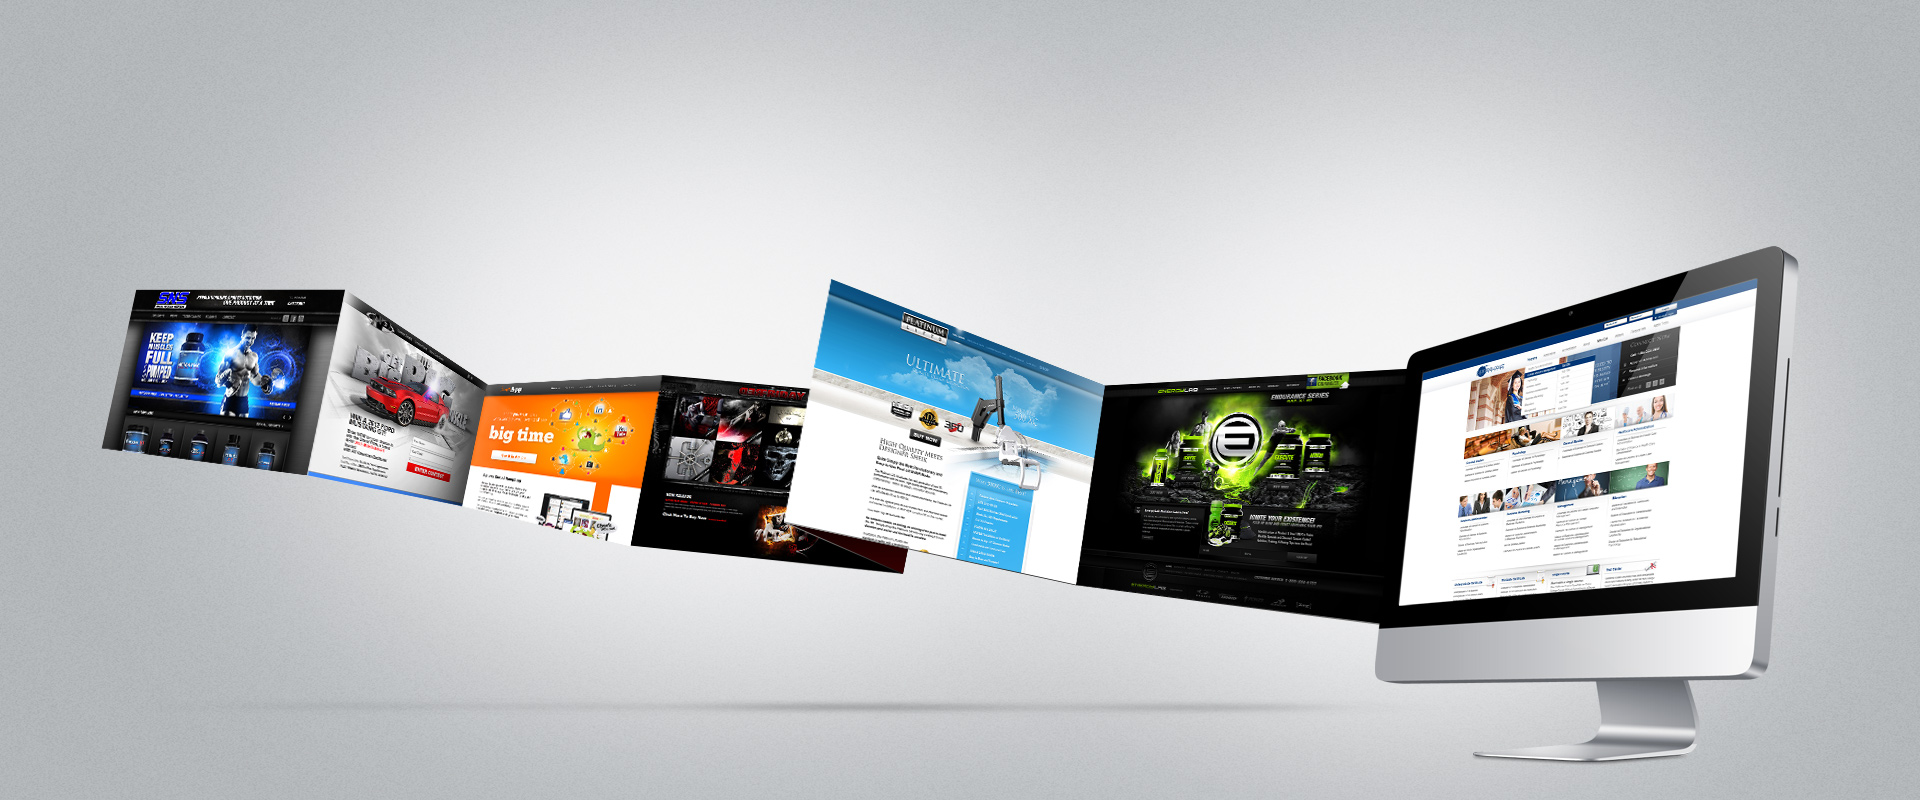 Web Design Scotland services in Glasgow